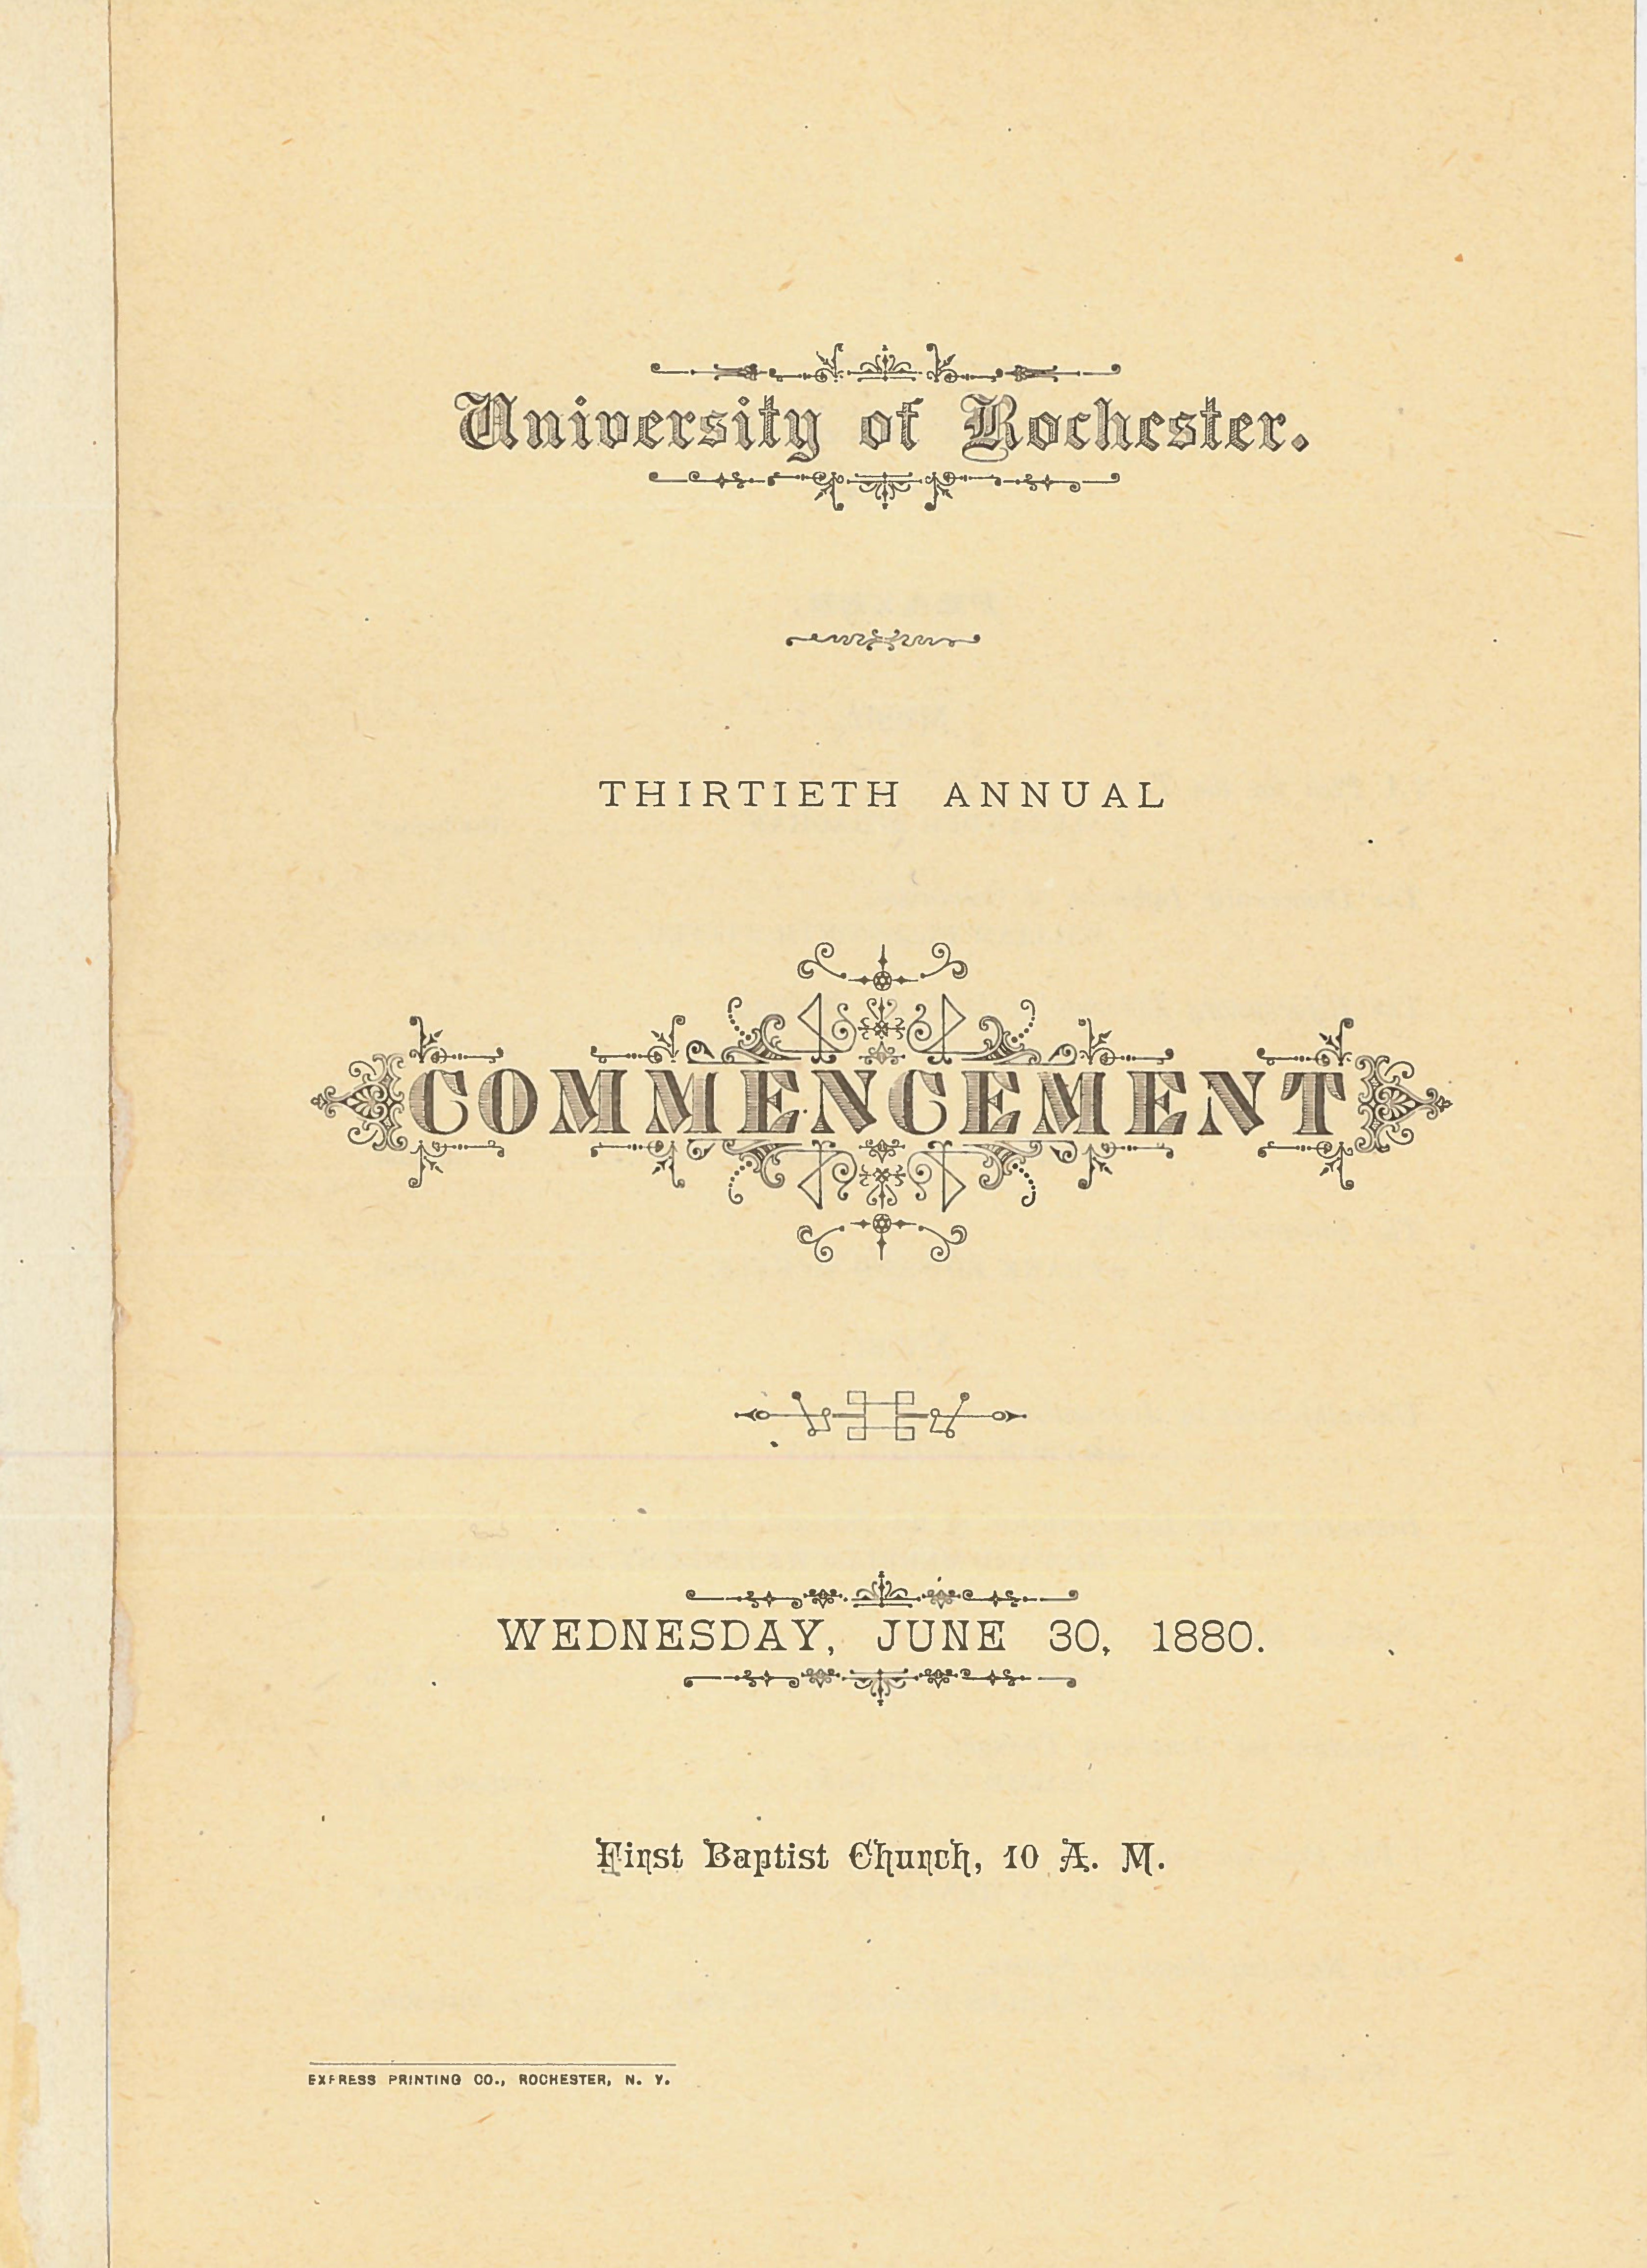 Commencement program, 1880